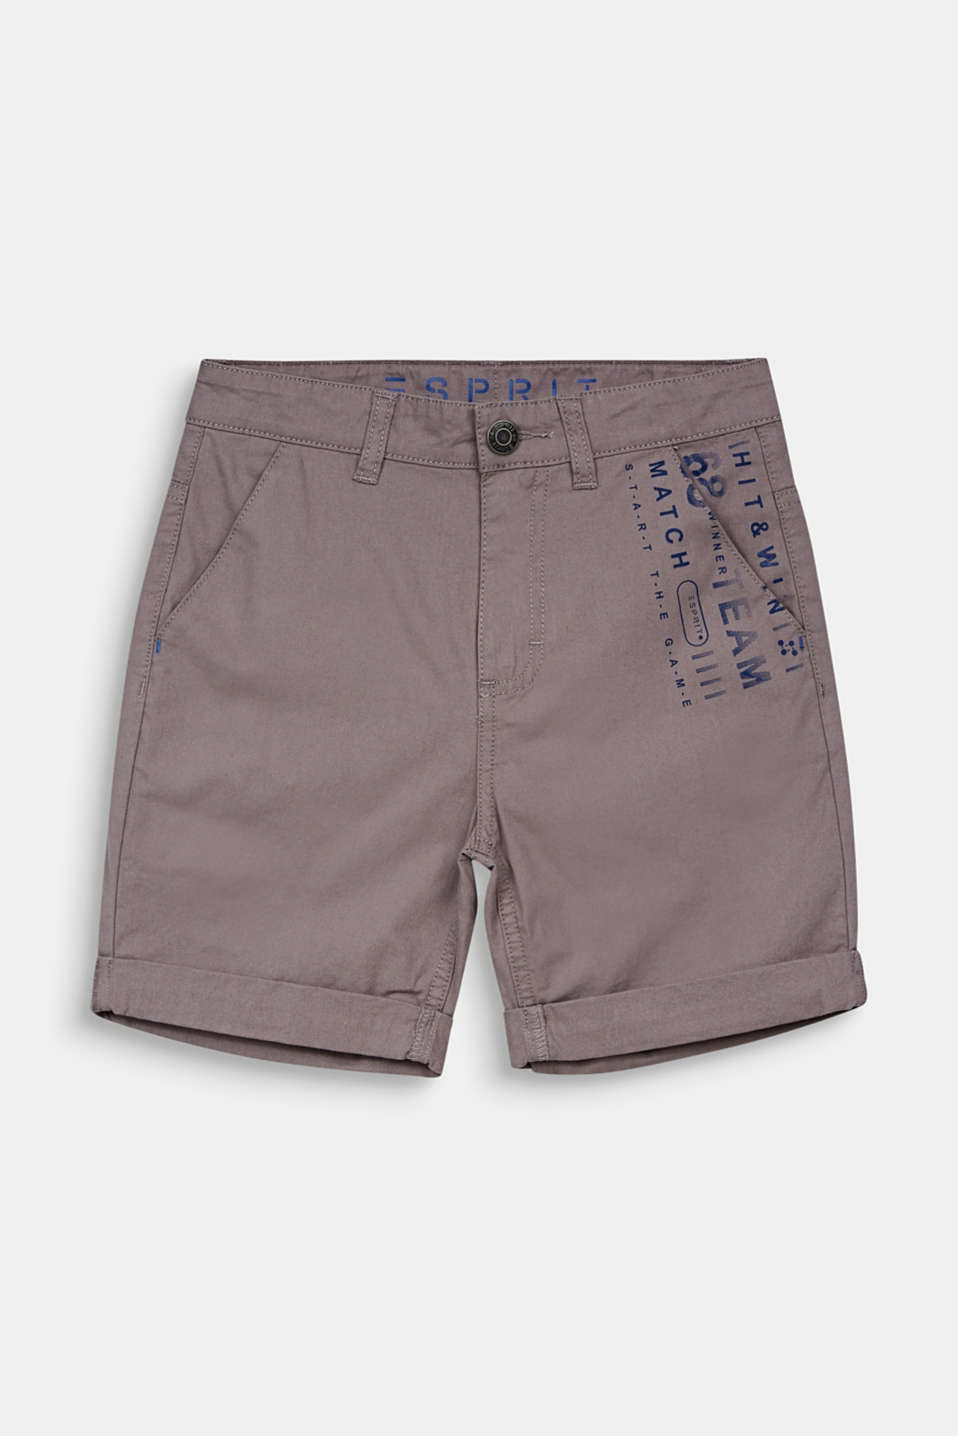 Esprit - Woven shorts with a print, 100% cotton